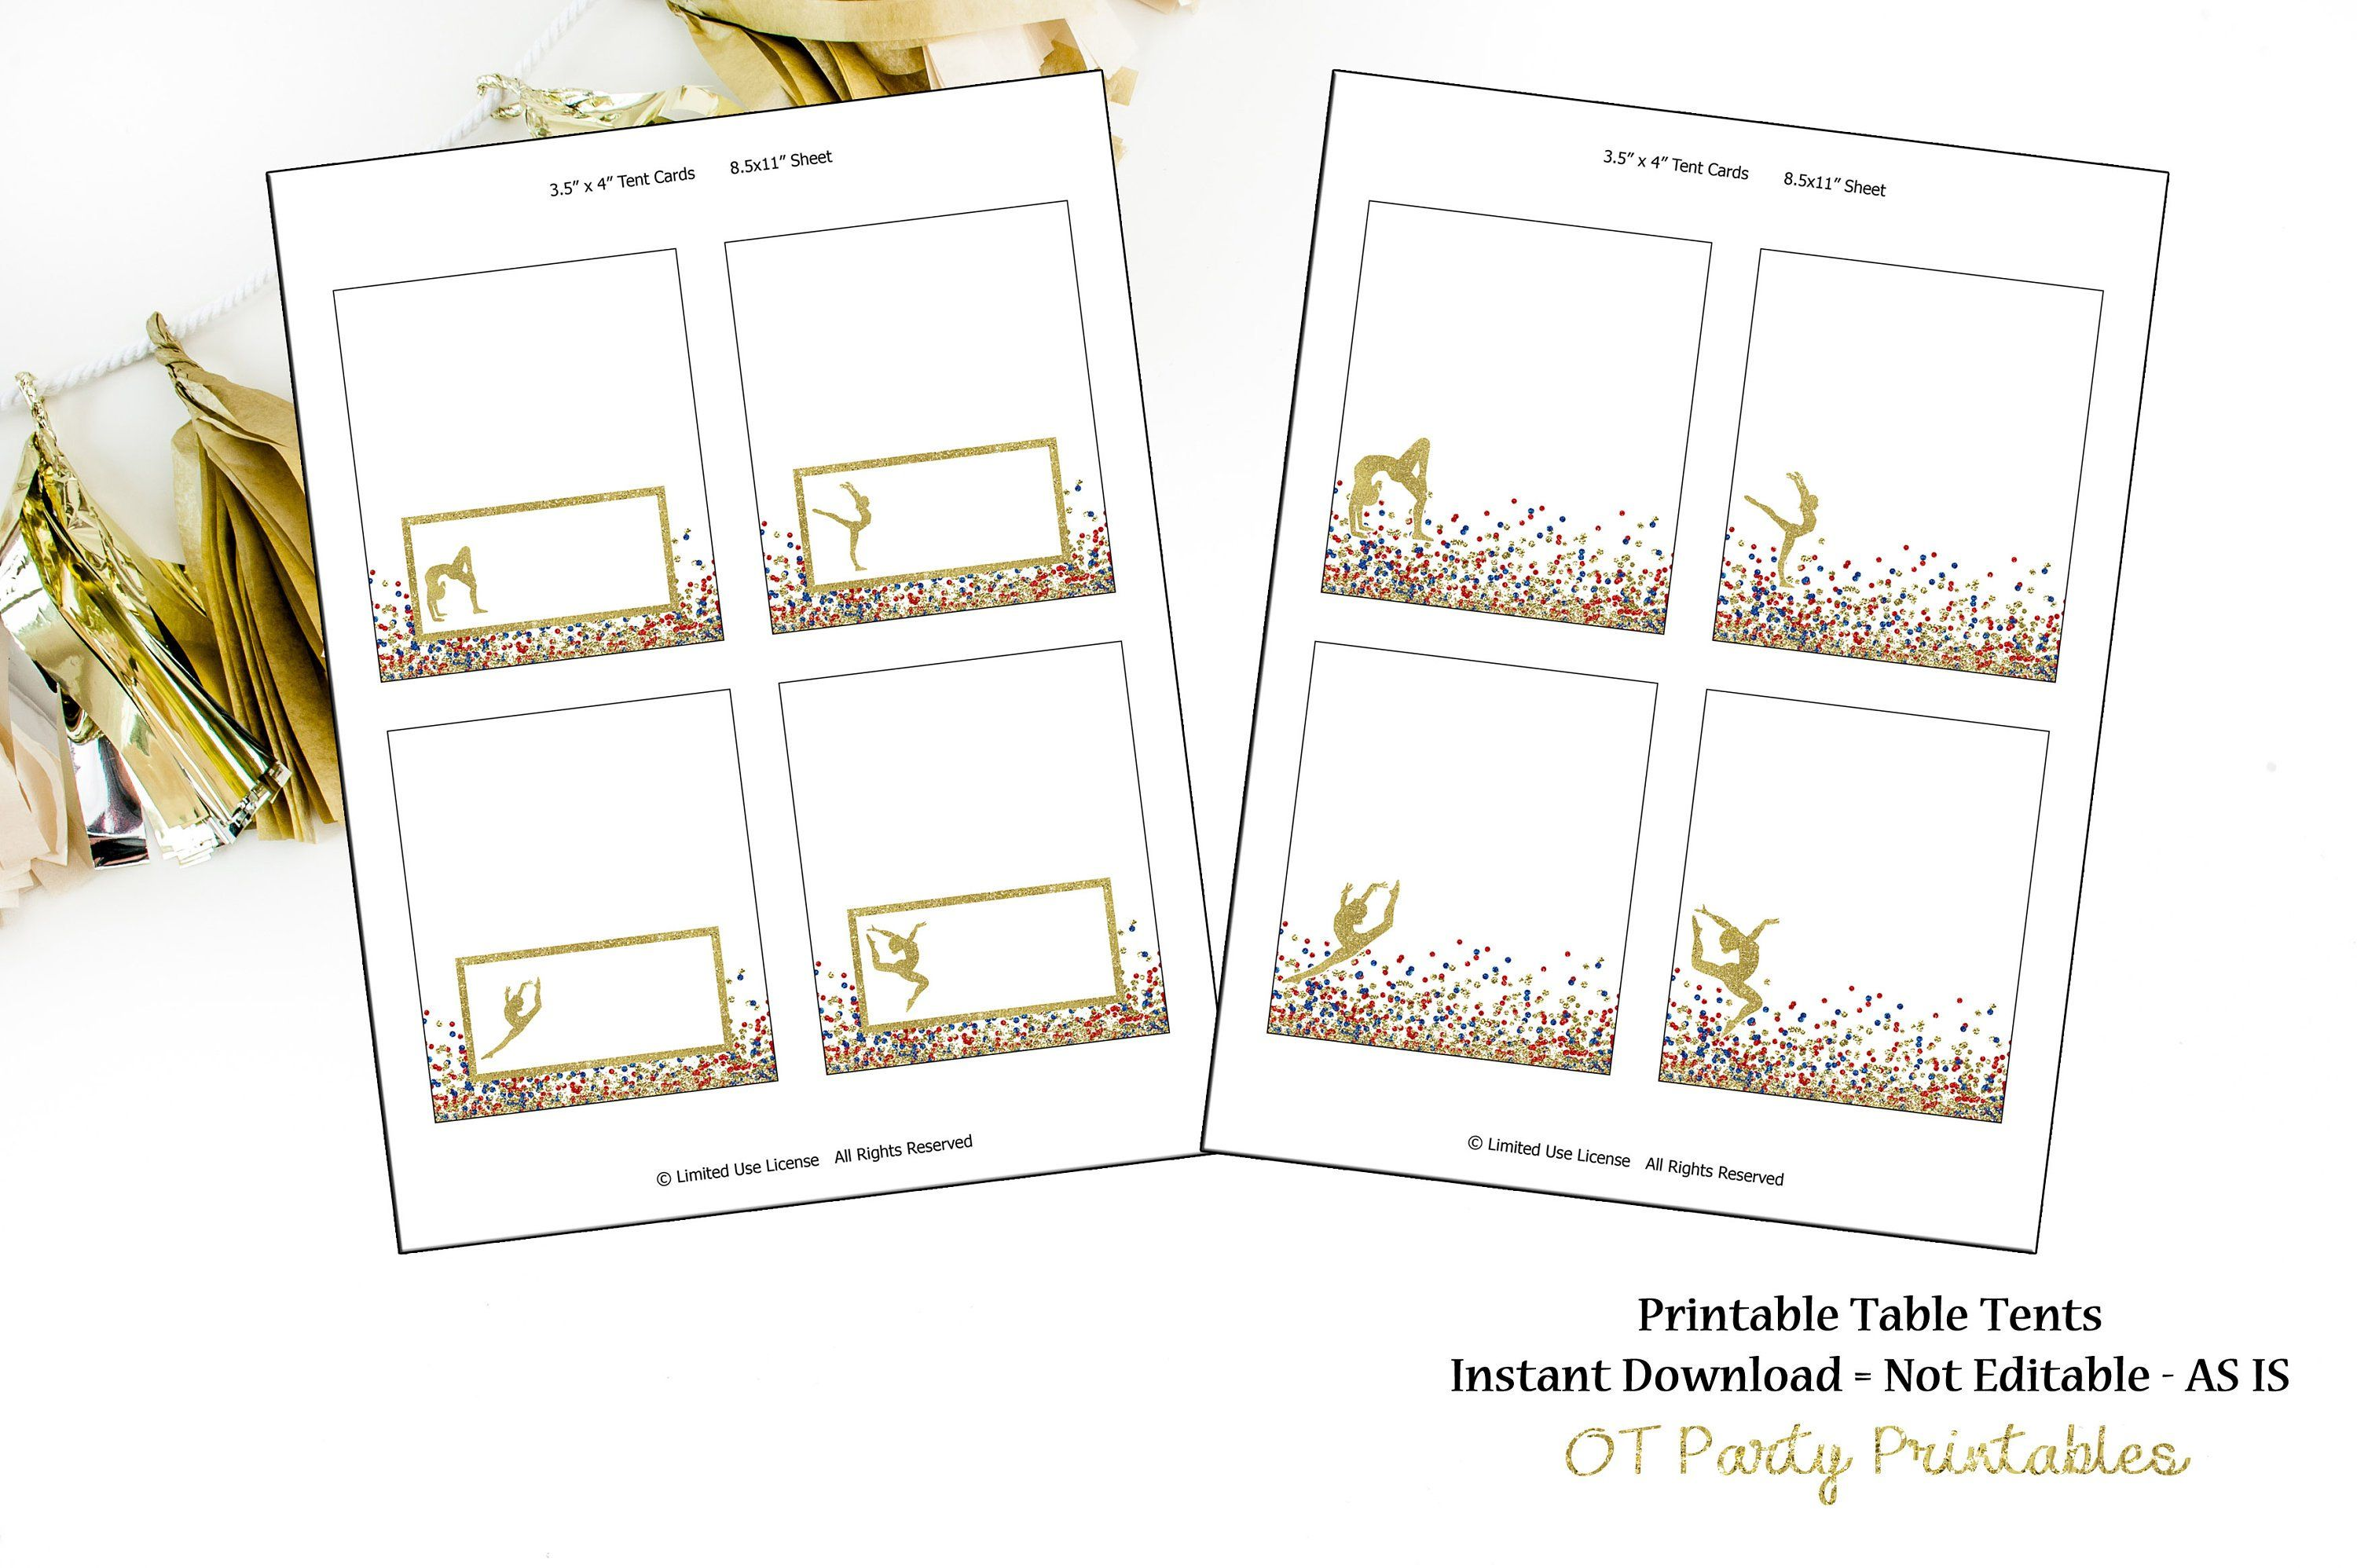 Instant Download Gymnastics Table Tents Printable Food Labels Gymnastics Labels You Print Confetti Gy Diy Party Printables Bottle Wrappers Diy Prints